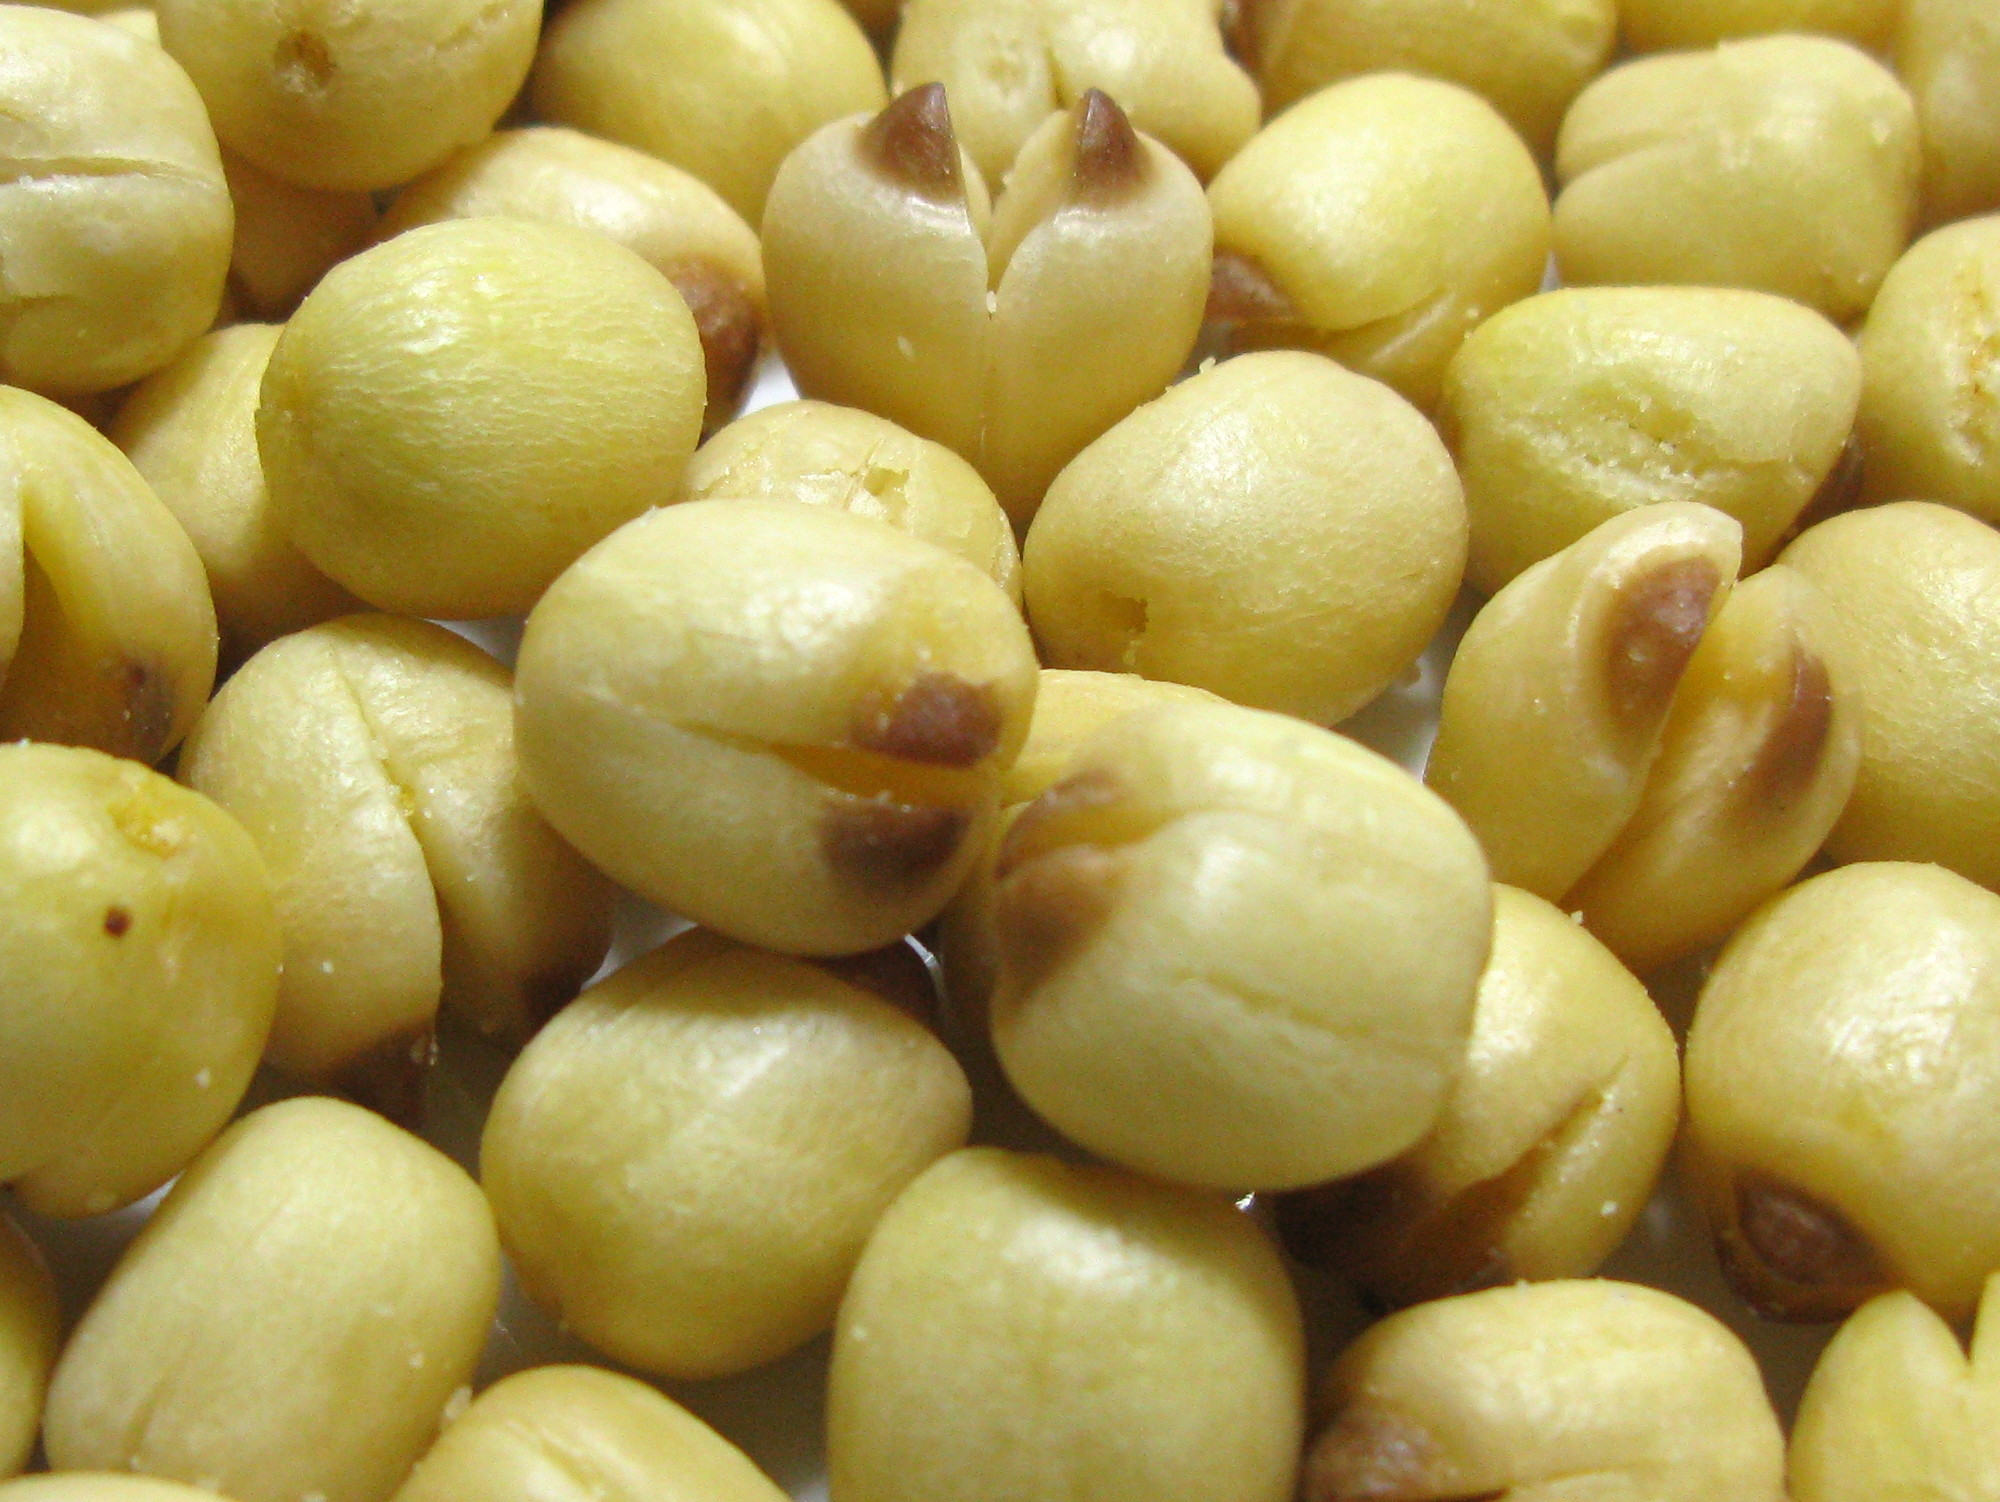 http://upload.wikimedia.org/wikipedia/commons/2/24/Dried_lotus_seeds.jpg